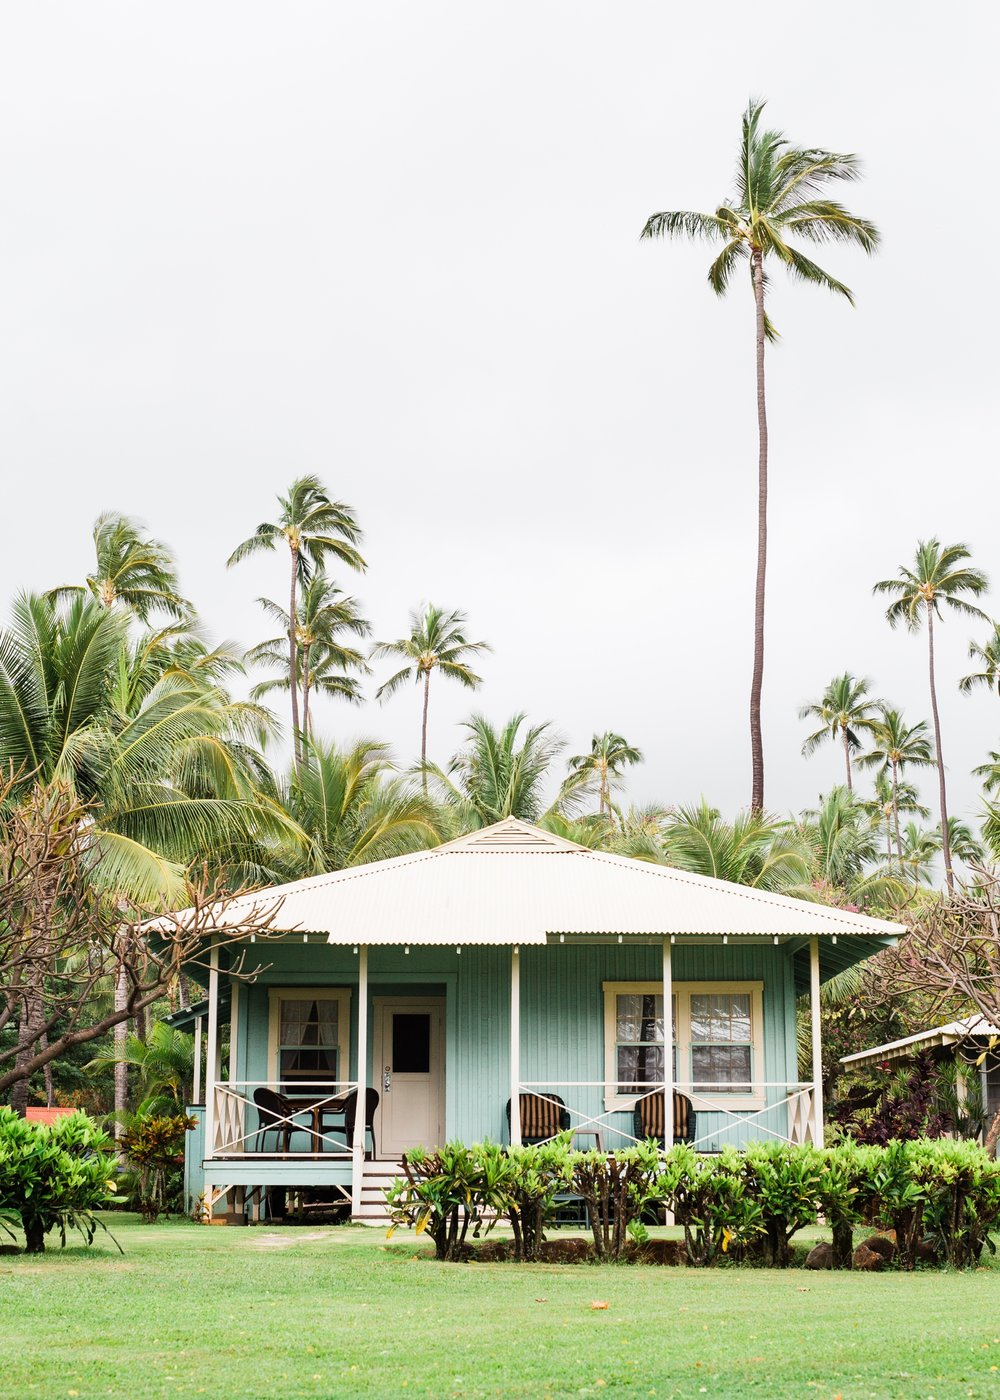 cameron-zegers-destination-wedding-photographer-seattle-kauai-waimea-plantation-cottages.jpg